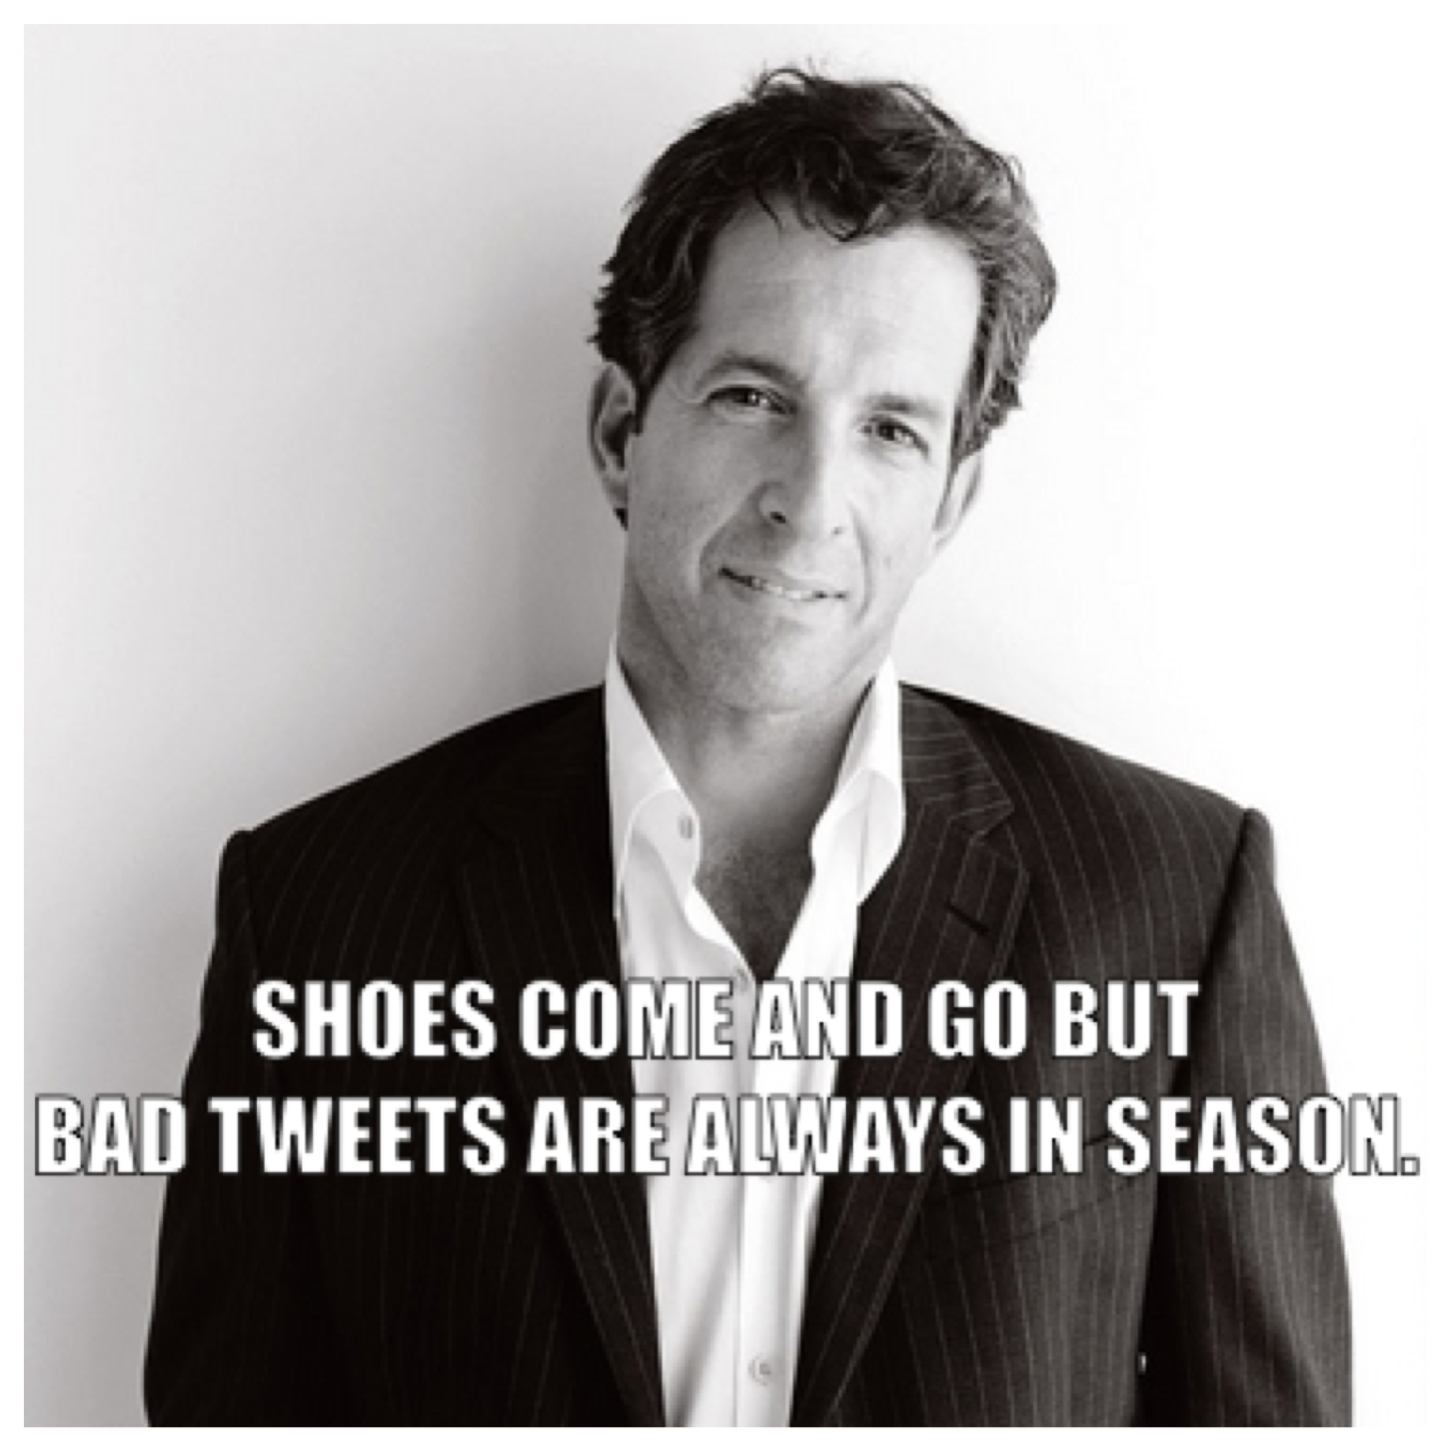 Kenneth Cole's Tweets